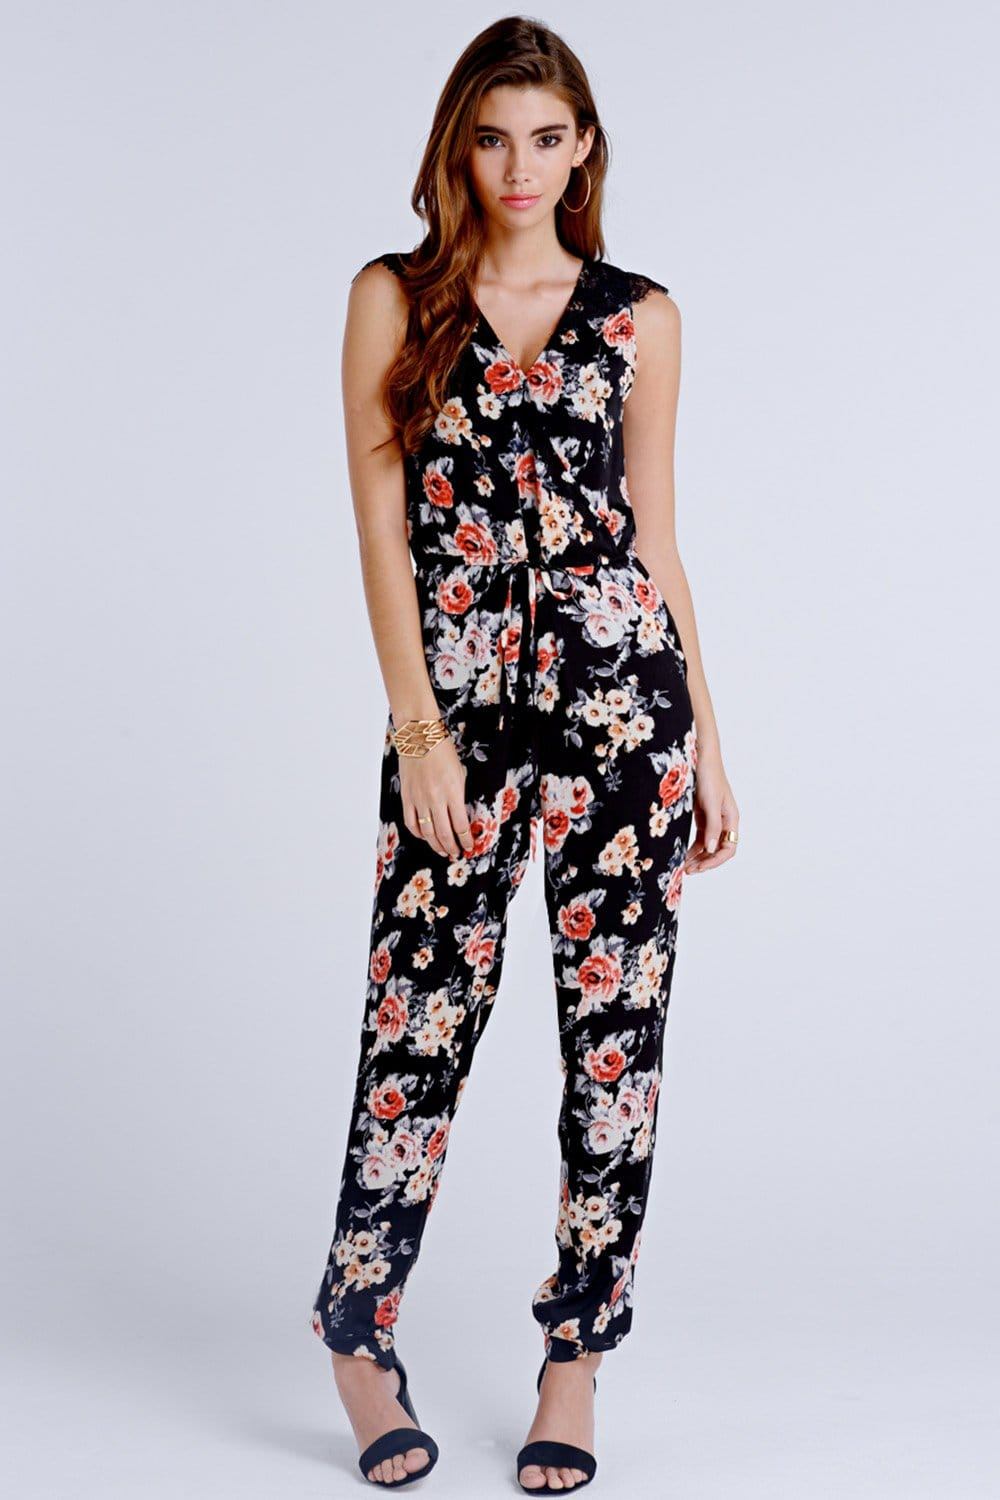 Girl's Jumpsuits and Rompers Offer Easy Fashion. Dressing fashionably is simple when choosing the one-piece jumper, romper, or shortall. Thanks to multiple styles, colors, materials, and prints, girls and tweens enjoy easy, flatteringclothing that fits their style.